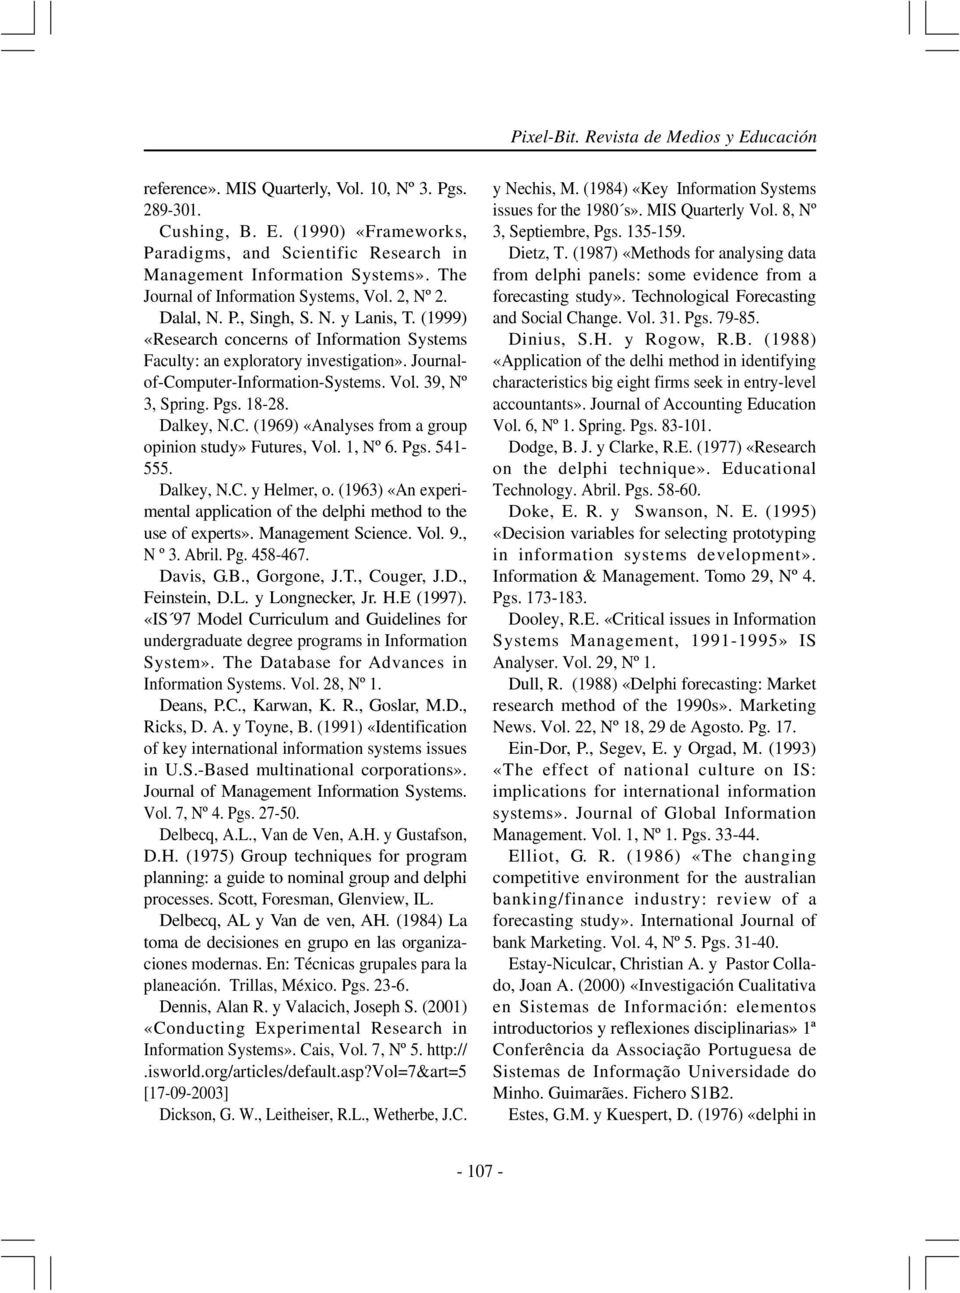 Journalof-Computer-Information-Systems. Vol. 39, Nº 3, Spring. Pgs. 18-28. Dalkey, N.C. (1969) «Analyses from a group opinion study» Futures, Vol. 1, Nº 6. Pgs. 541-555. Dalkey, N.C. y Helmer, o.